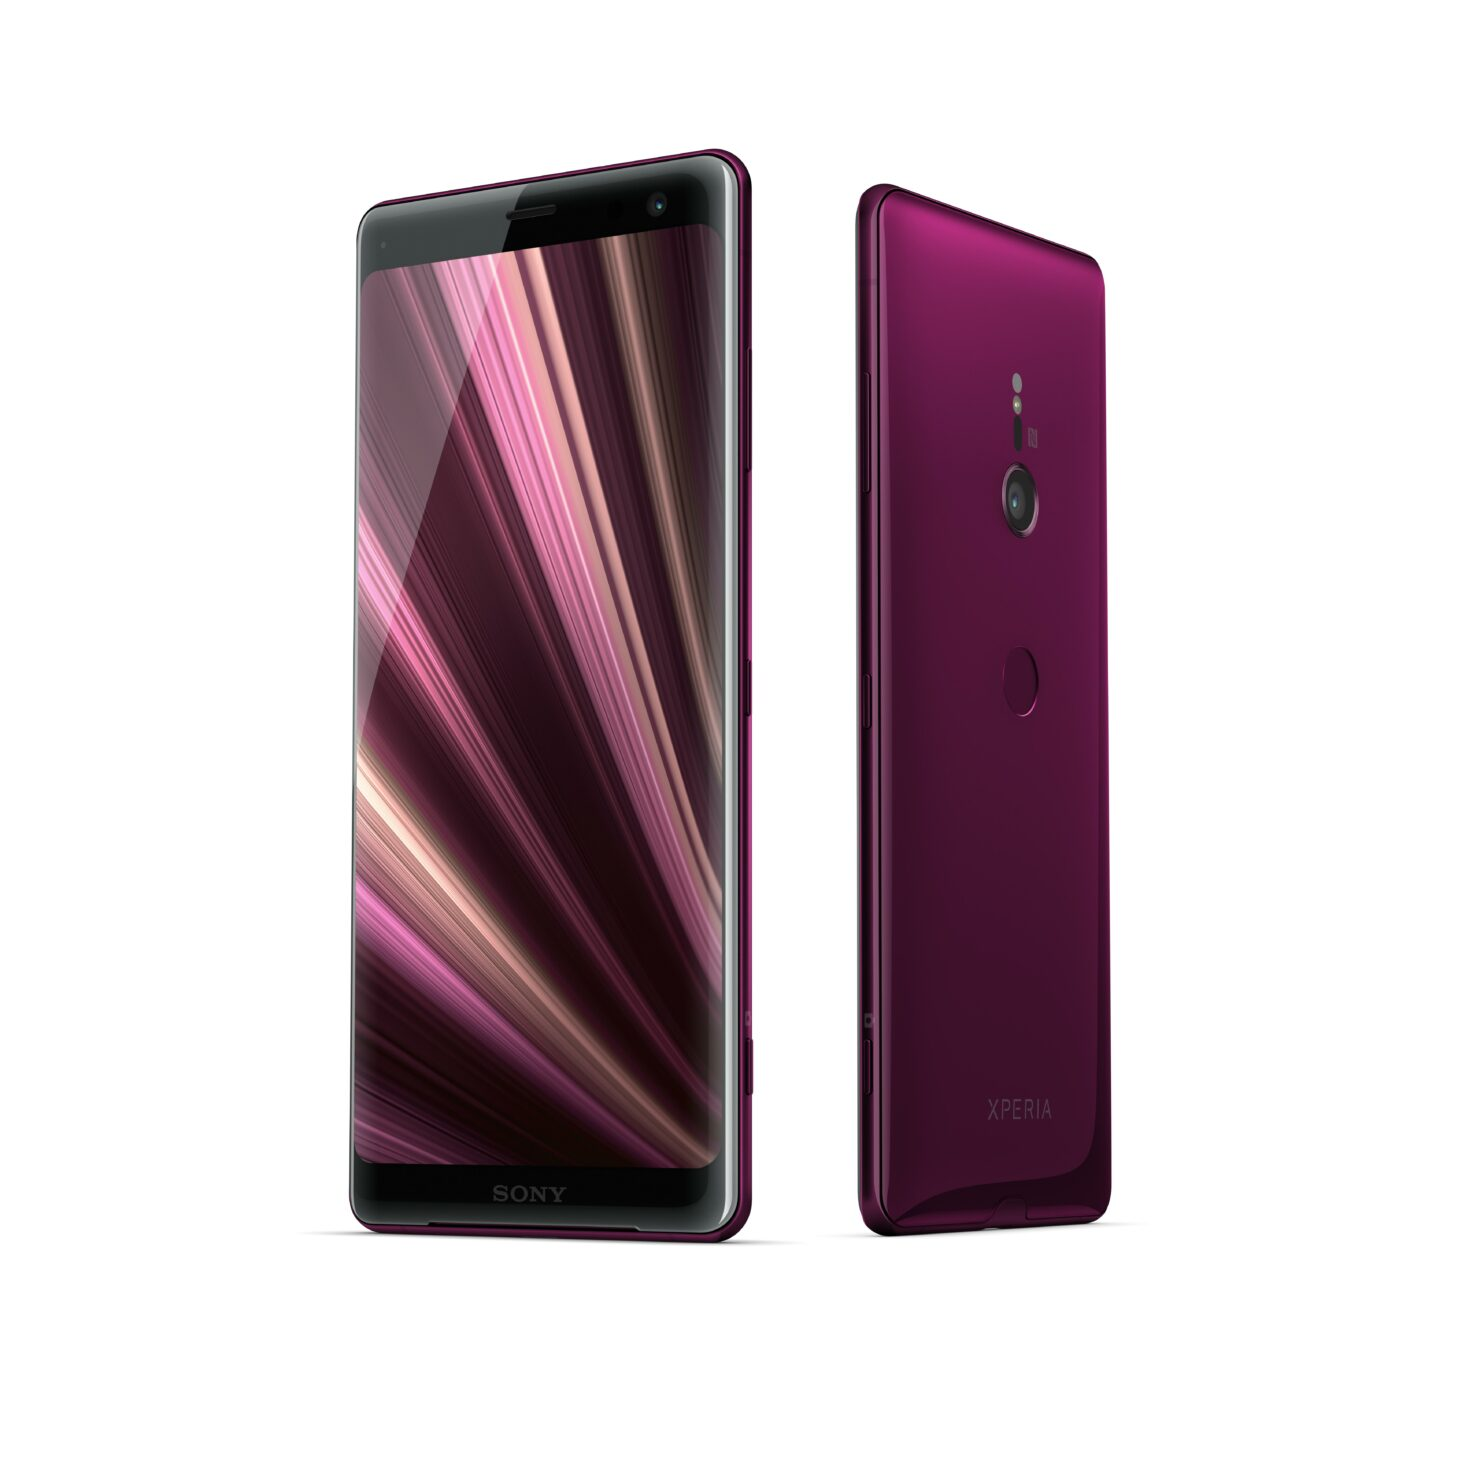 xperia-xz3_group_bordeaux_red_front40_back40